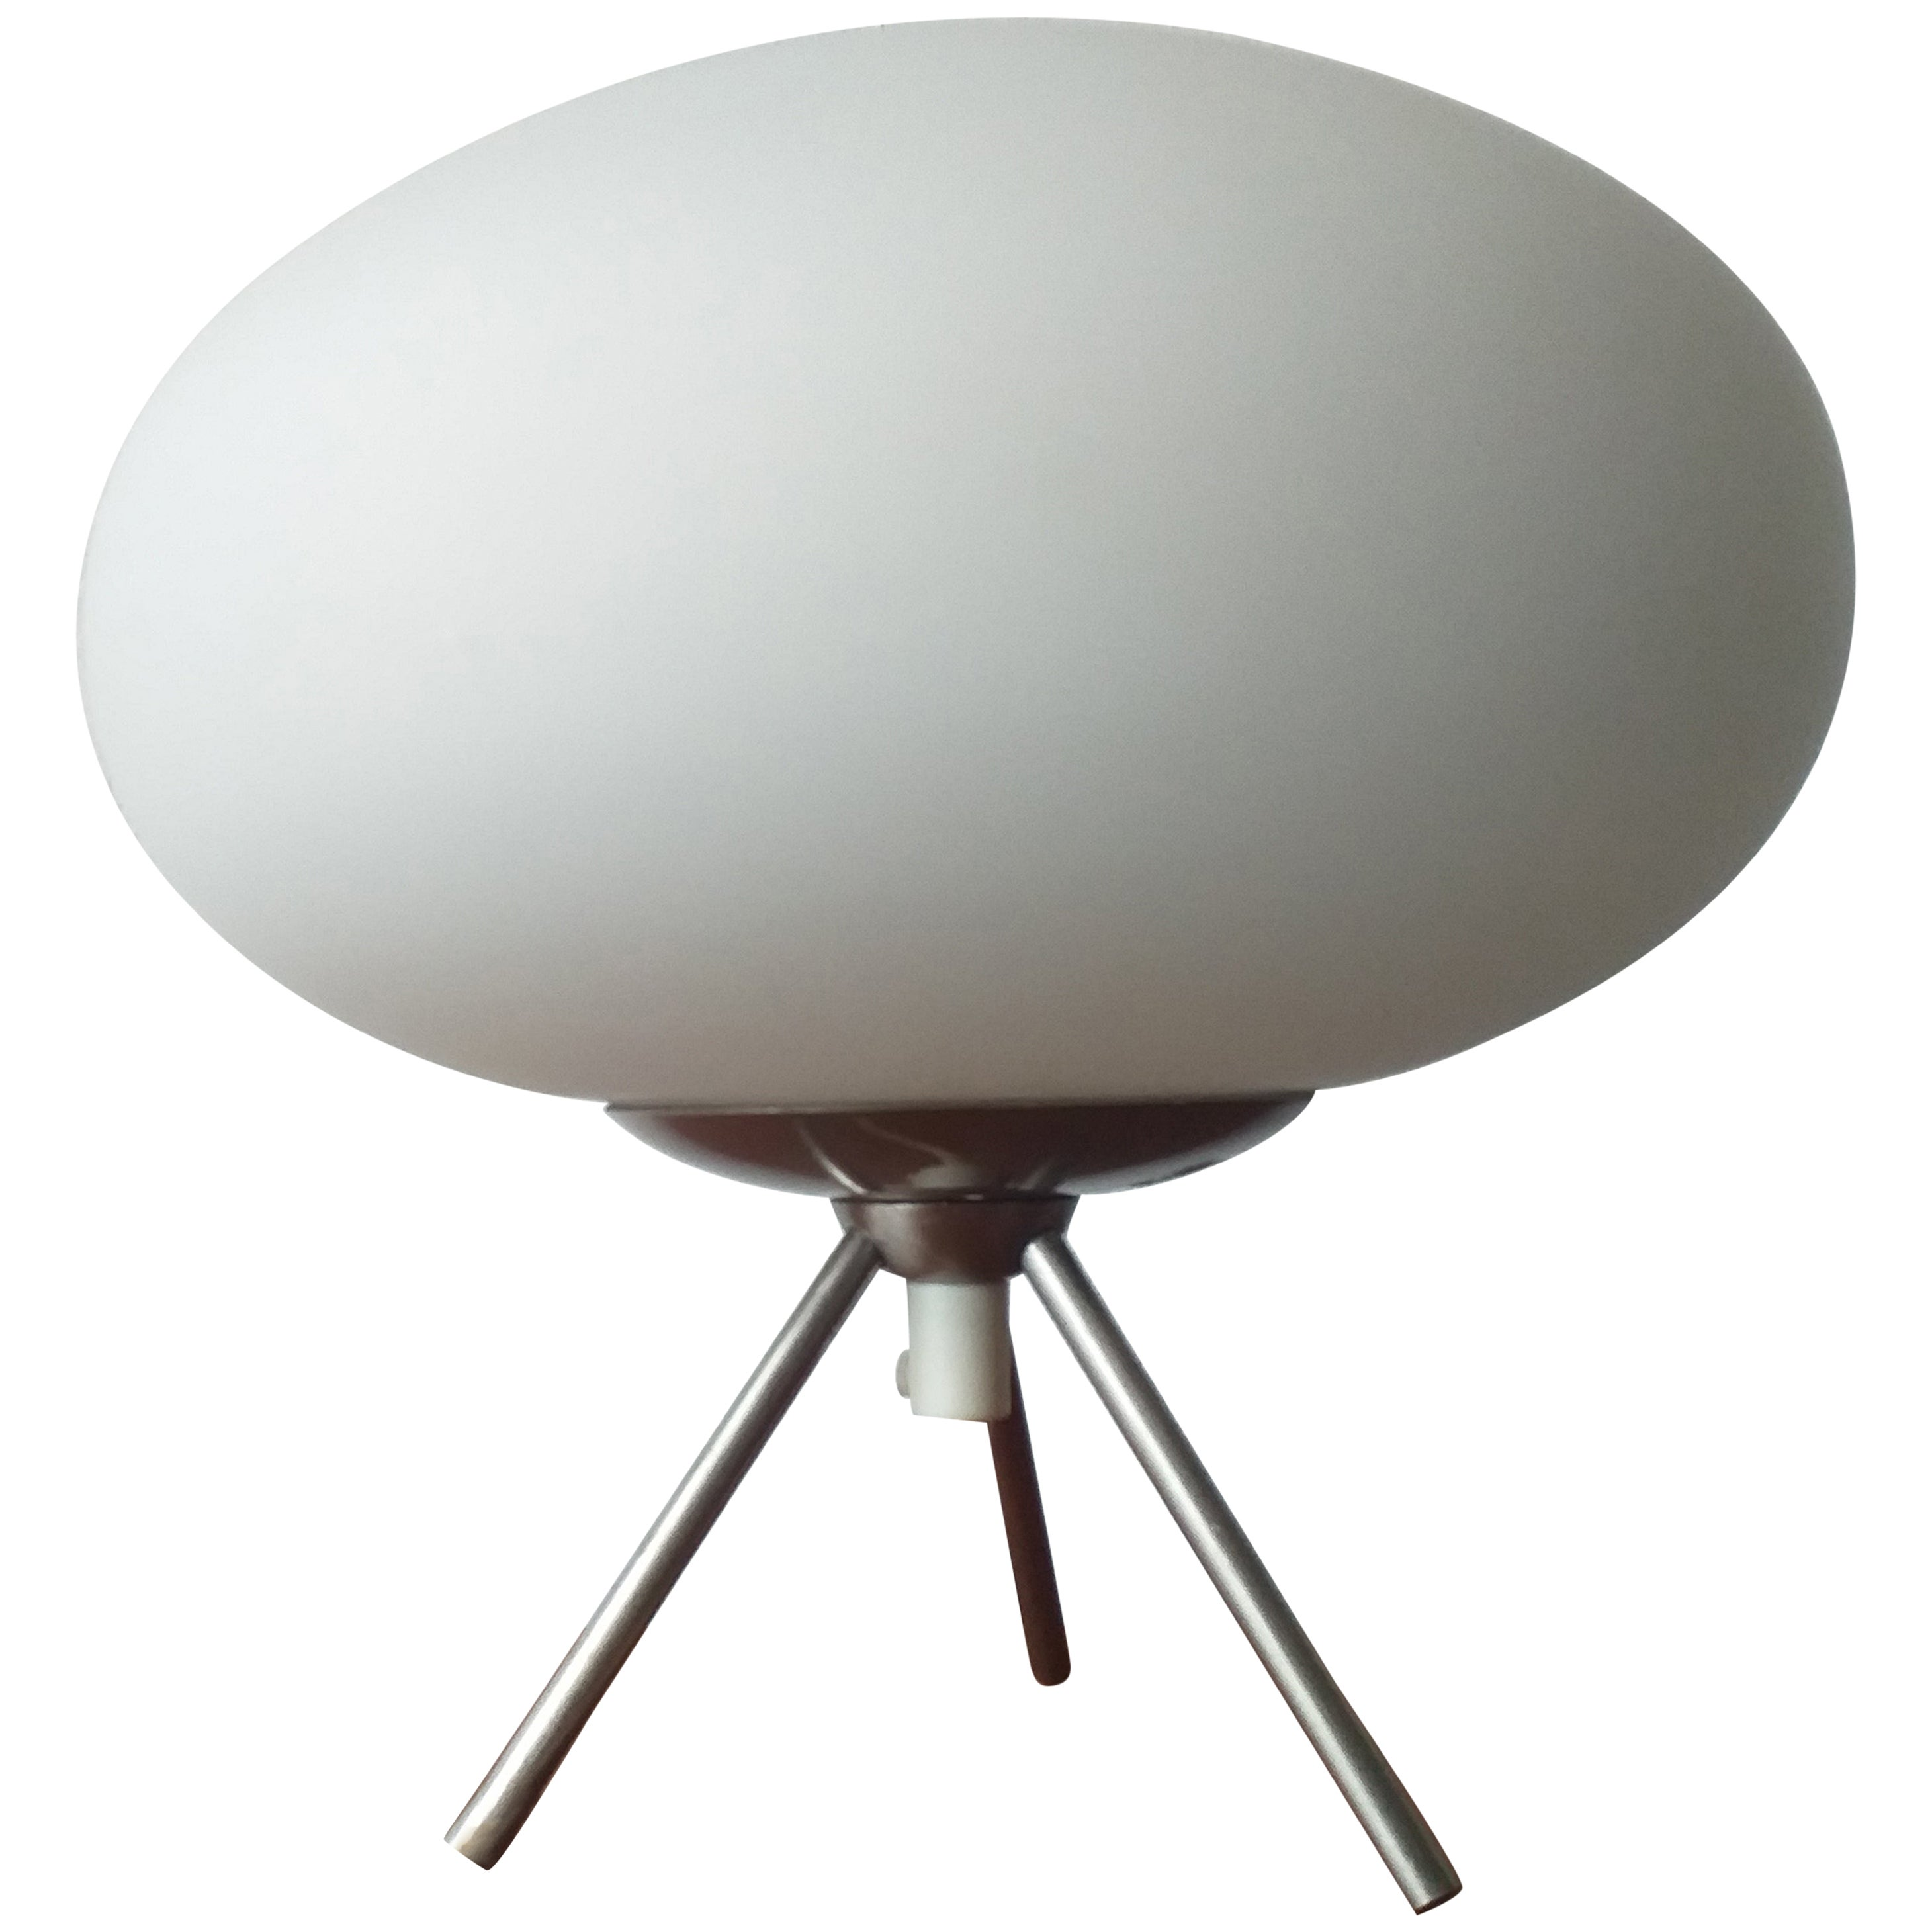 Midcentury Space Age Table Lamp, Italy, 1980s